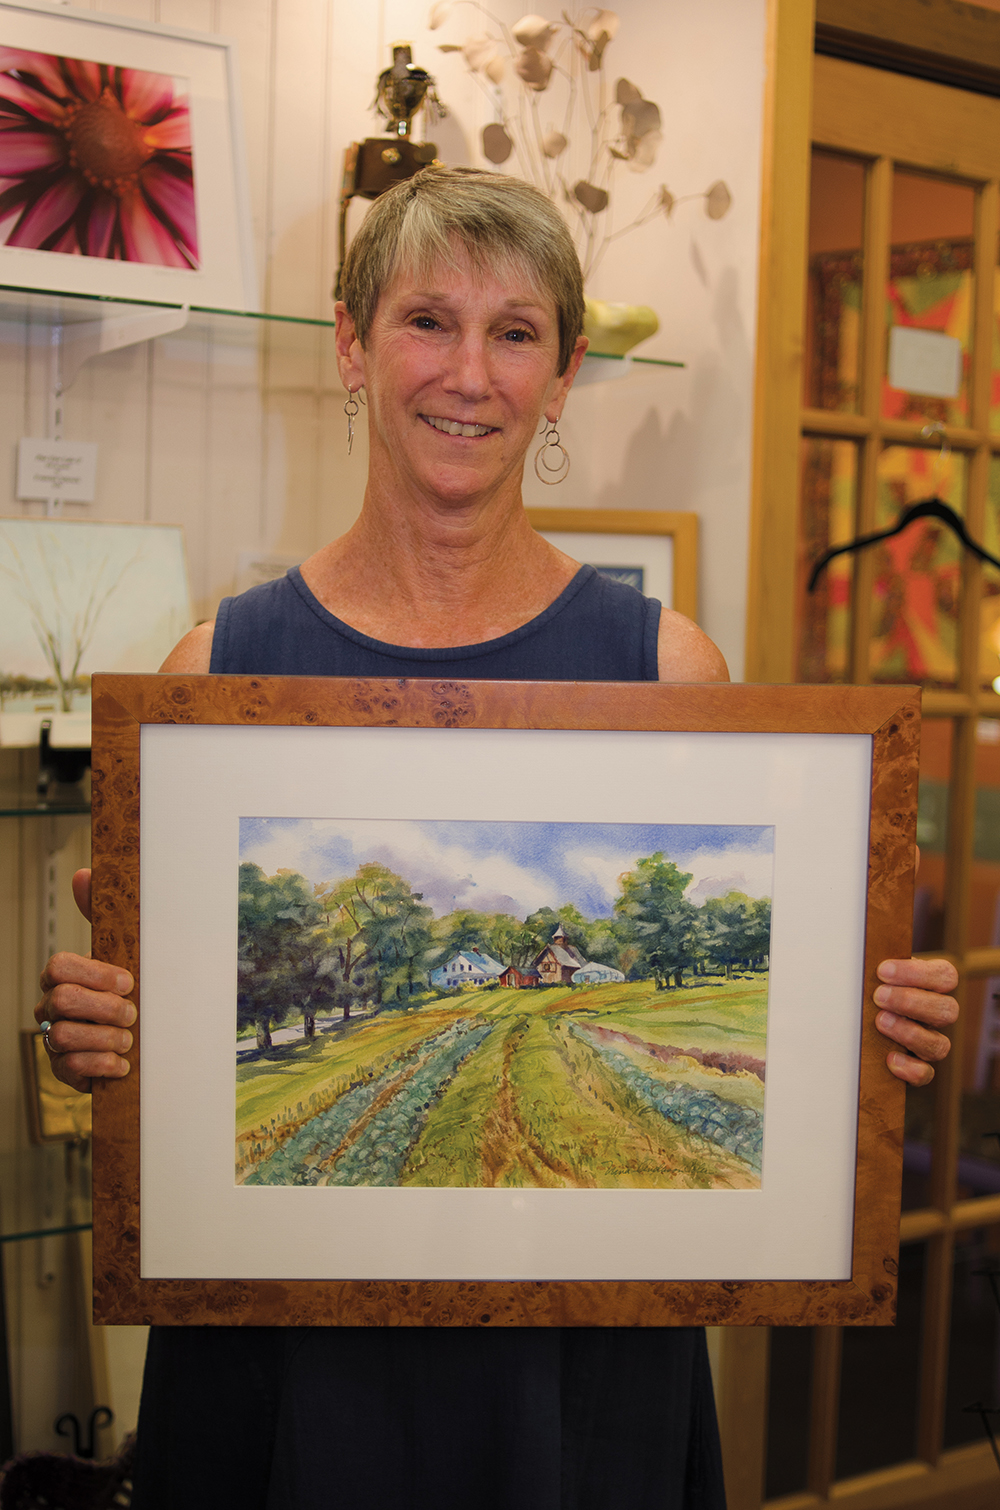 Painter Nina Anderson Coler displays one of her landscapes